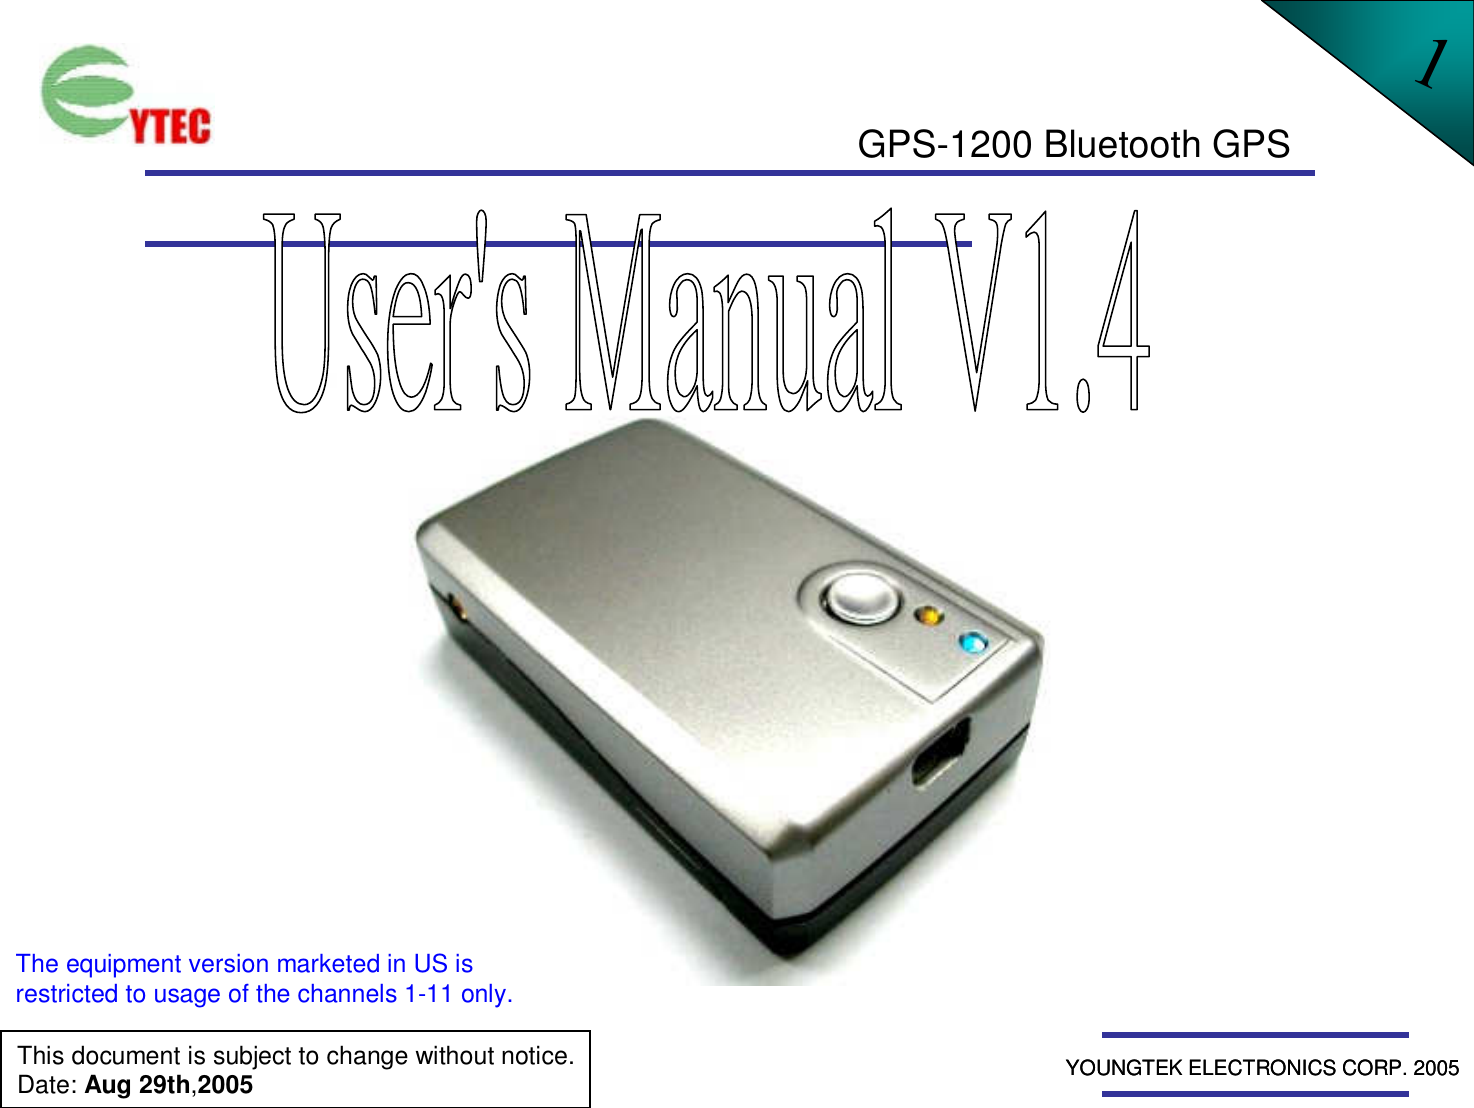 youngtek electronics gps 1200 bluetooth gps receiver user manual rh usermanual wiki TomTom GPS Manual TomTom GPS Manual